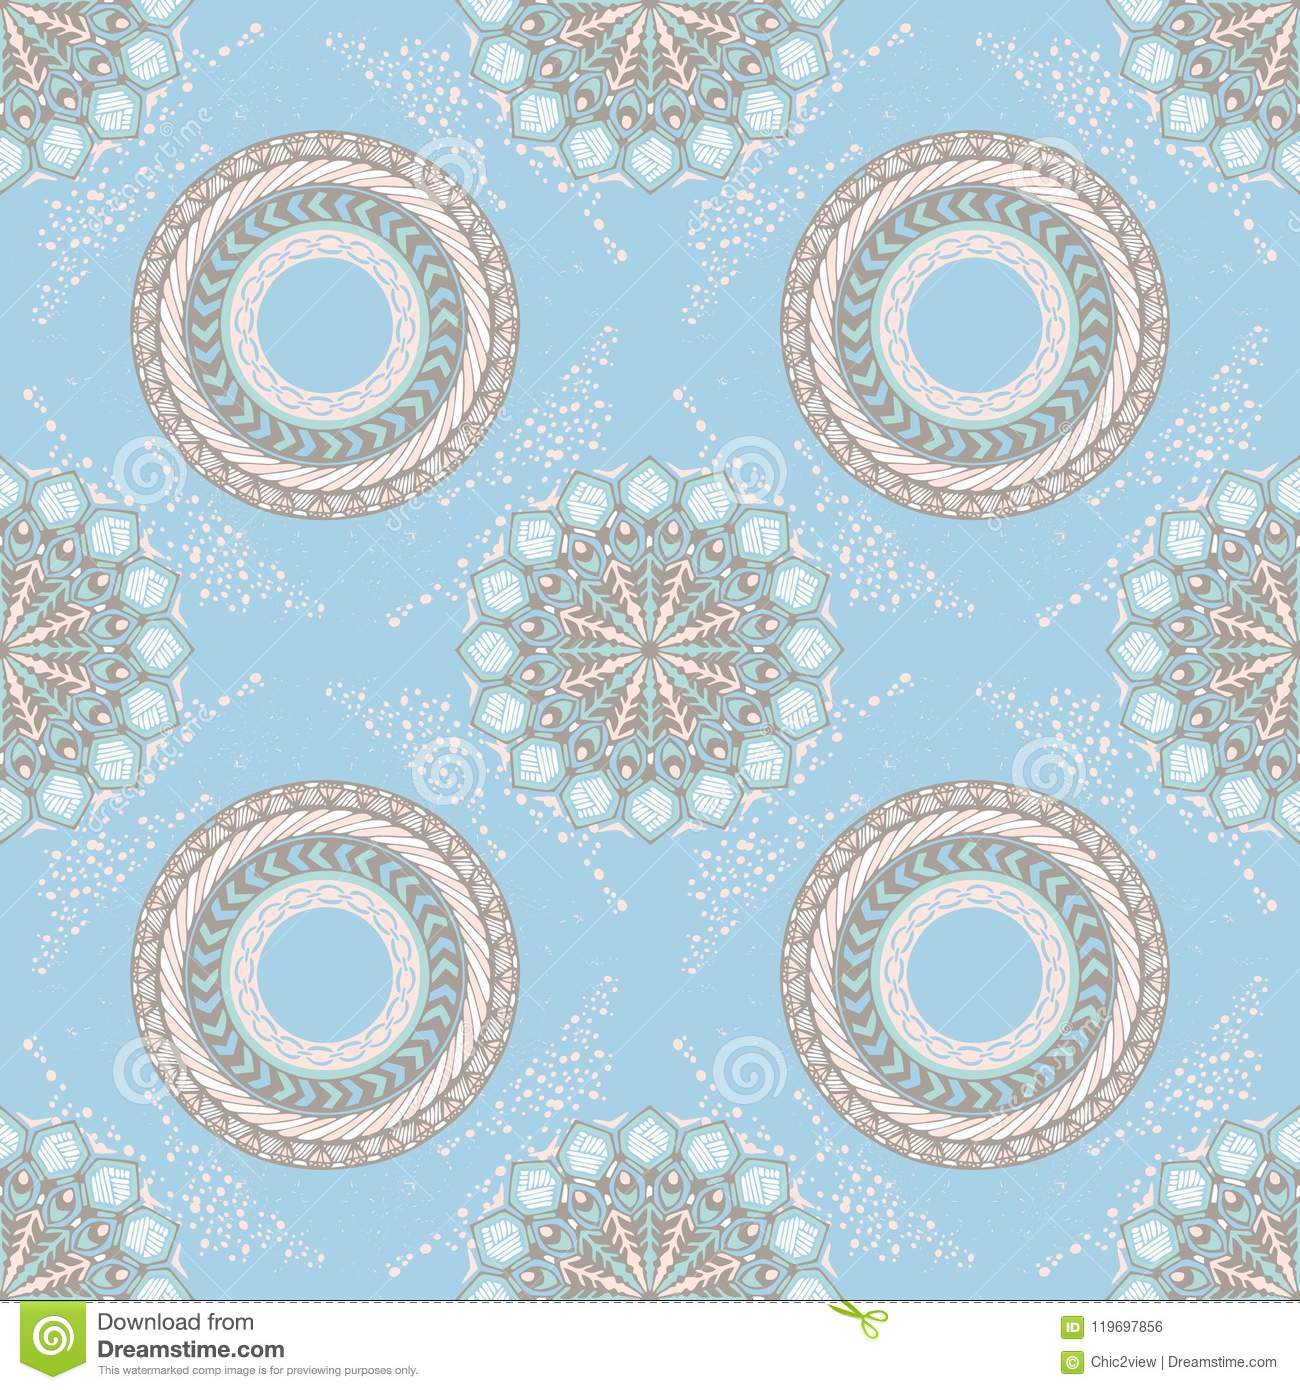 Tribal boho chic design for mandala style seamless pattern with pastel background